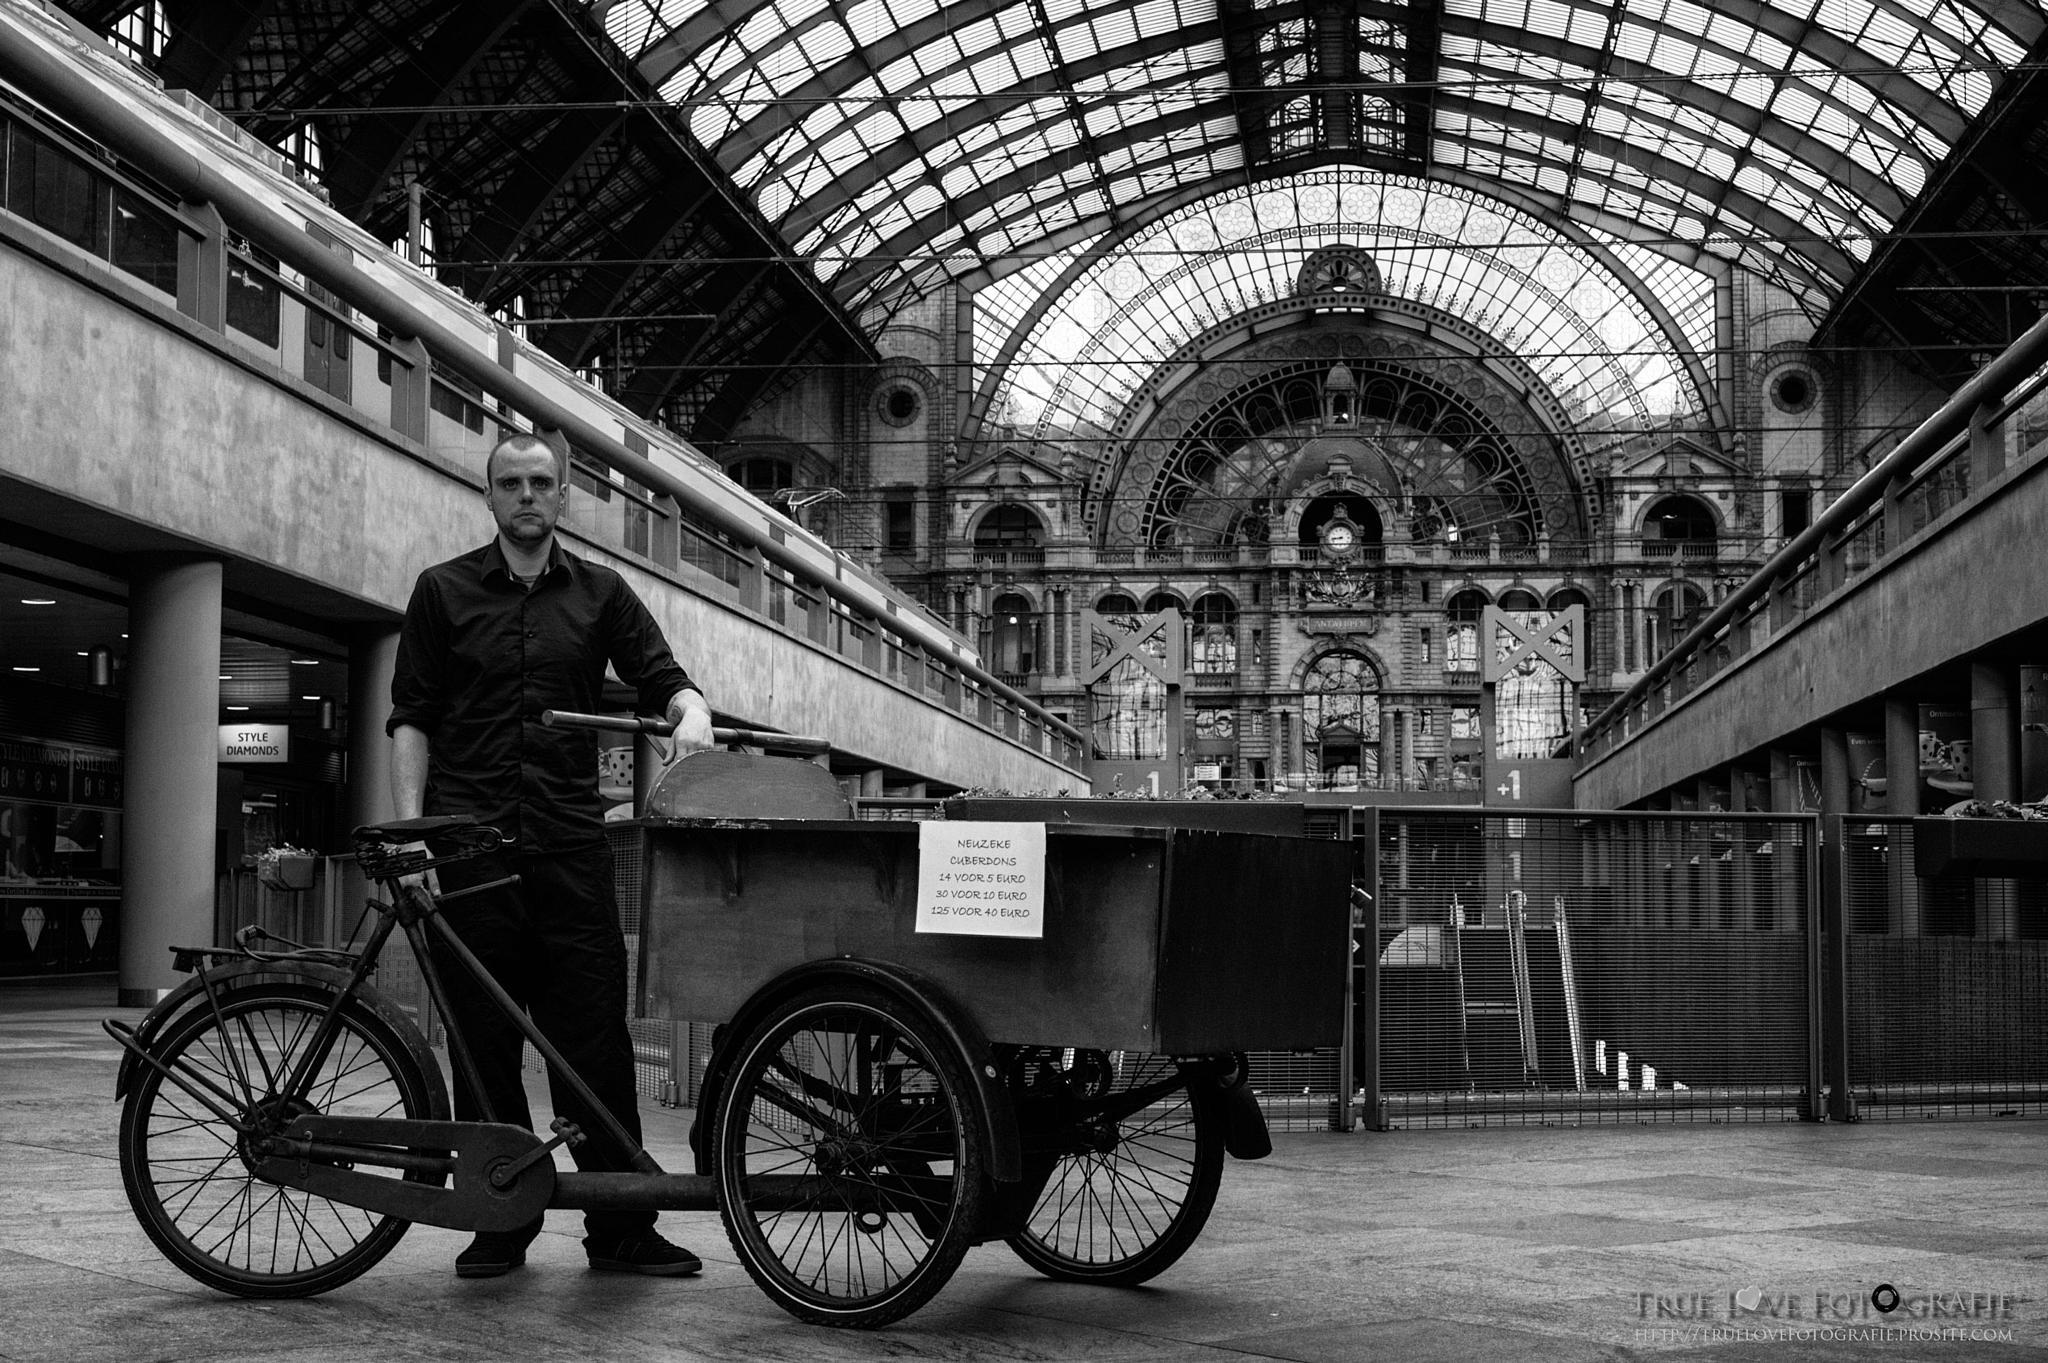 Vendor at Central Station Antwerp by True Love Photography